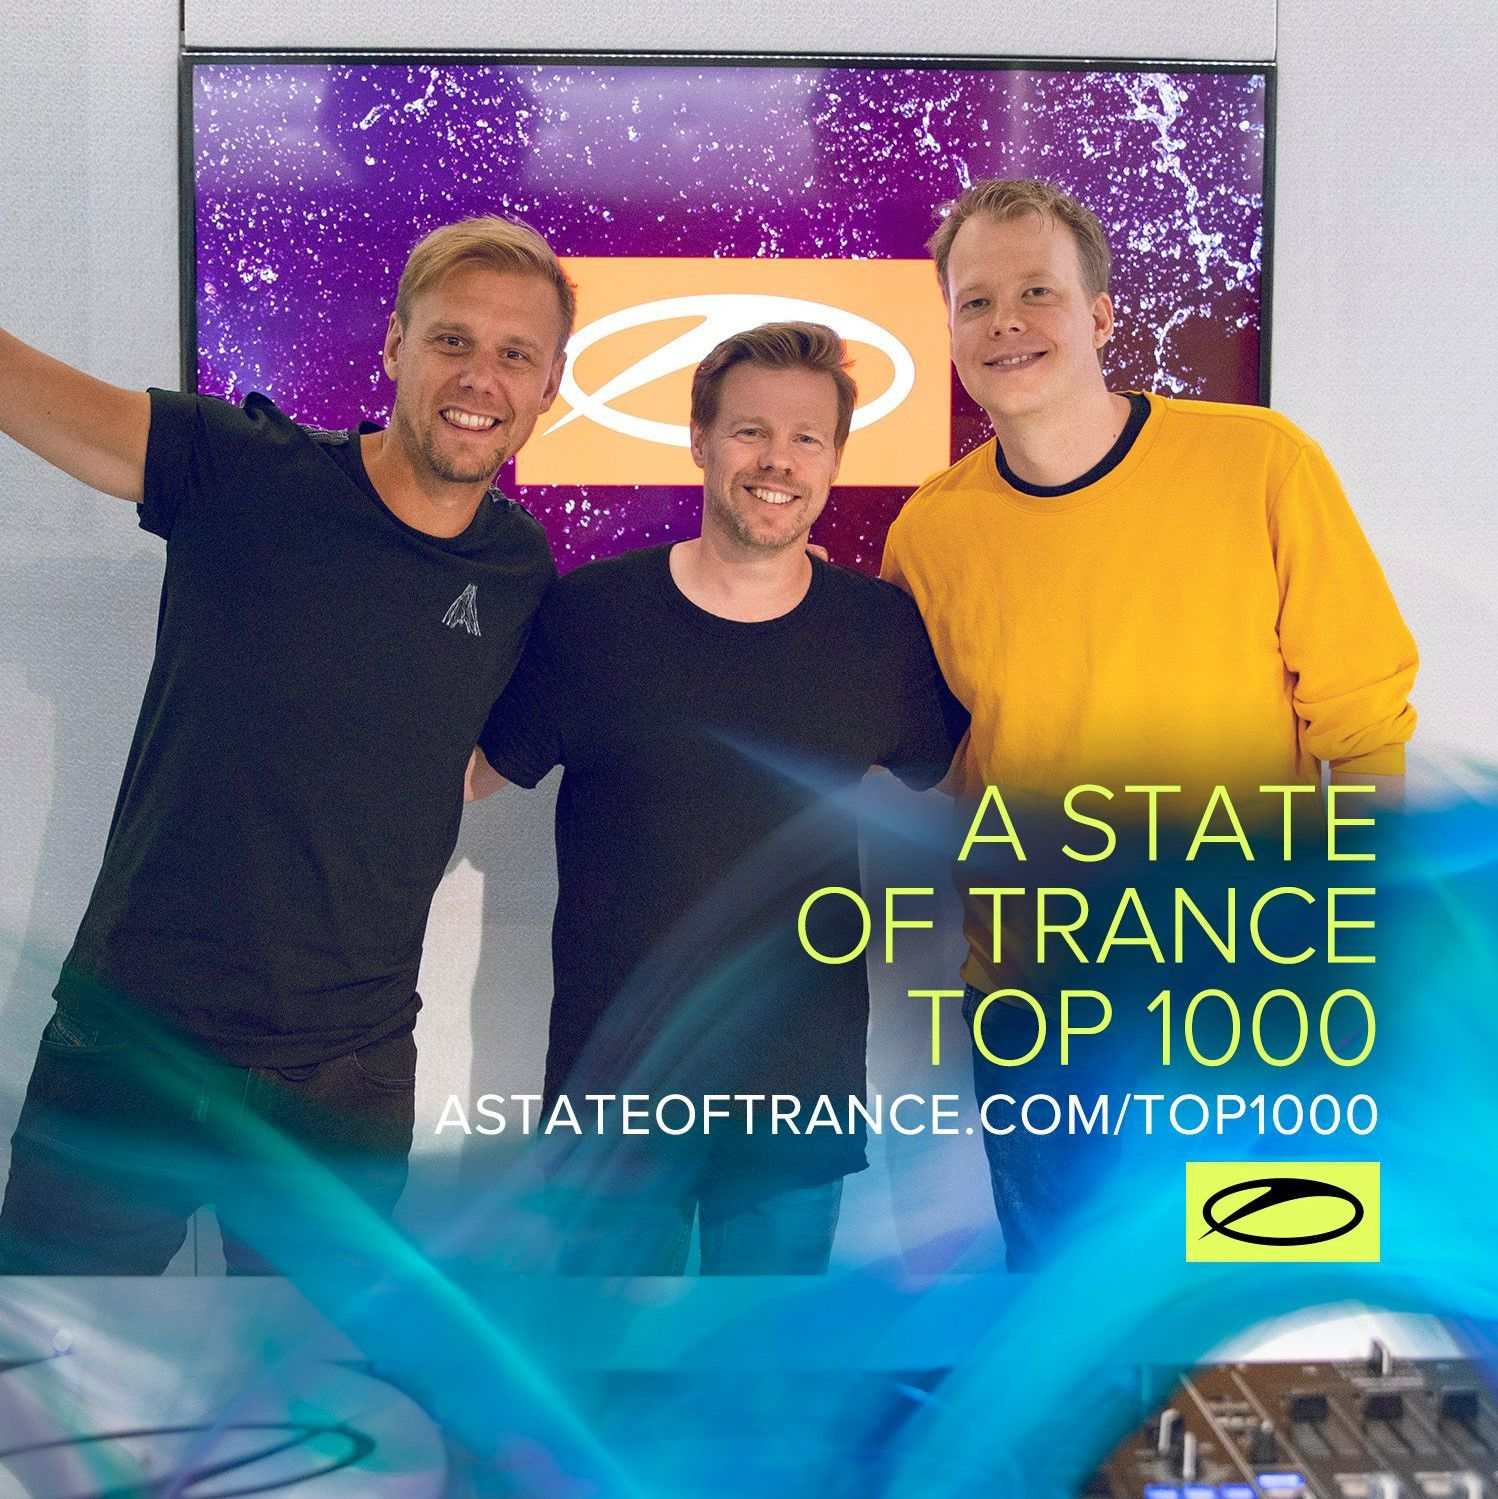 Armin van Buuren | A State Of Trance, top 1000, list